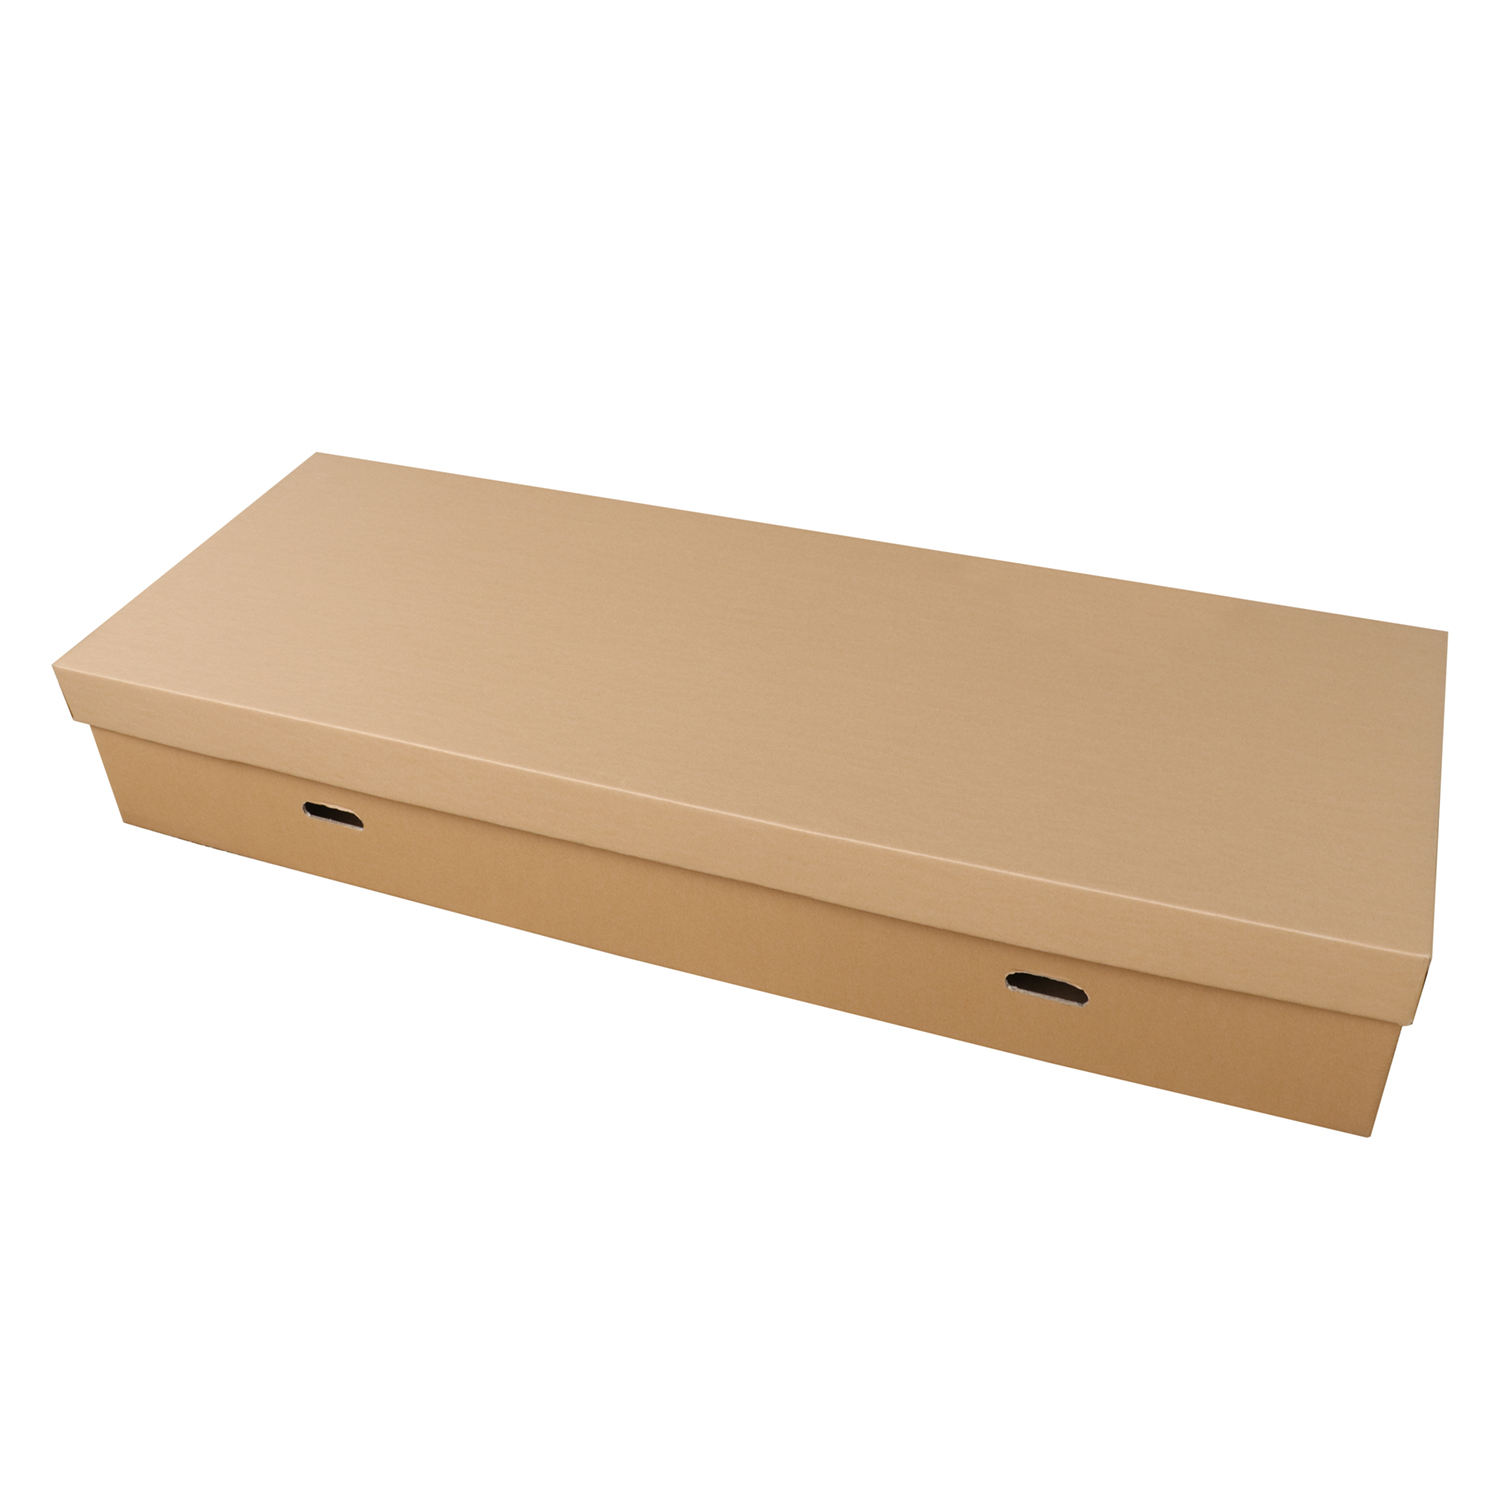 High quality cardboard cremation casket with good price